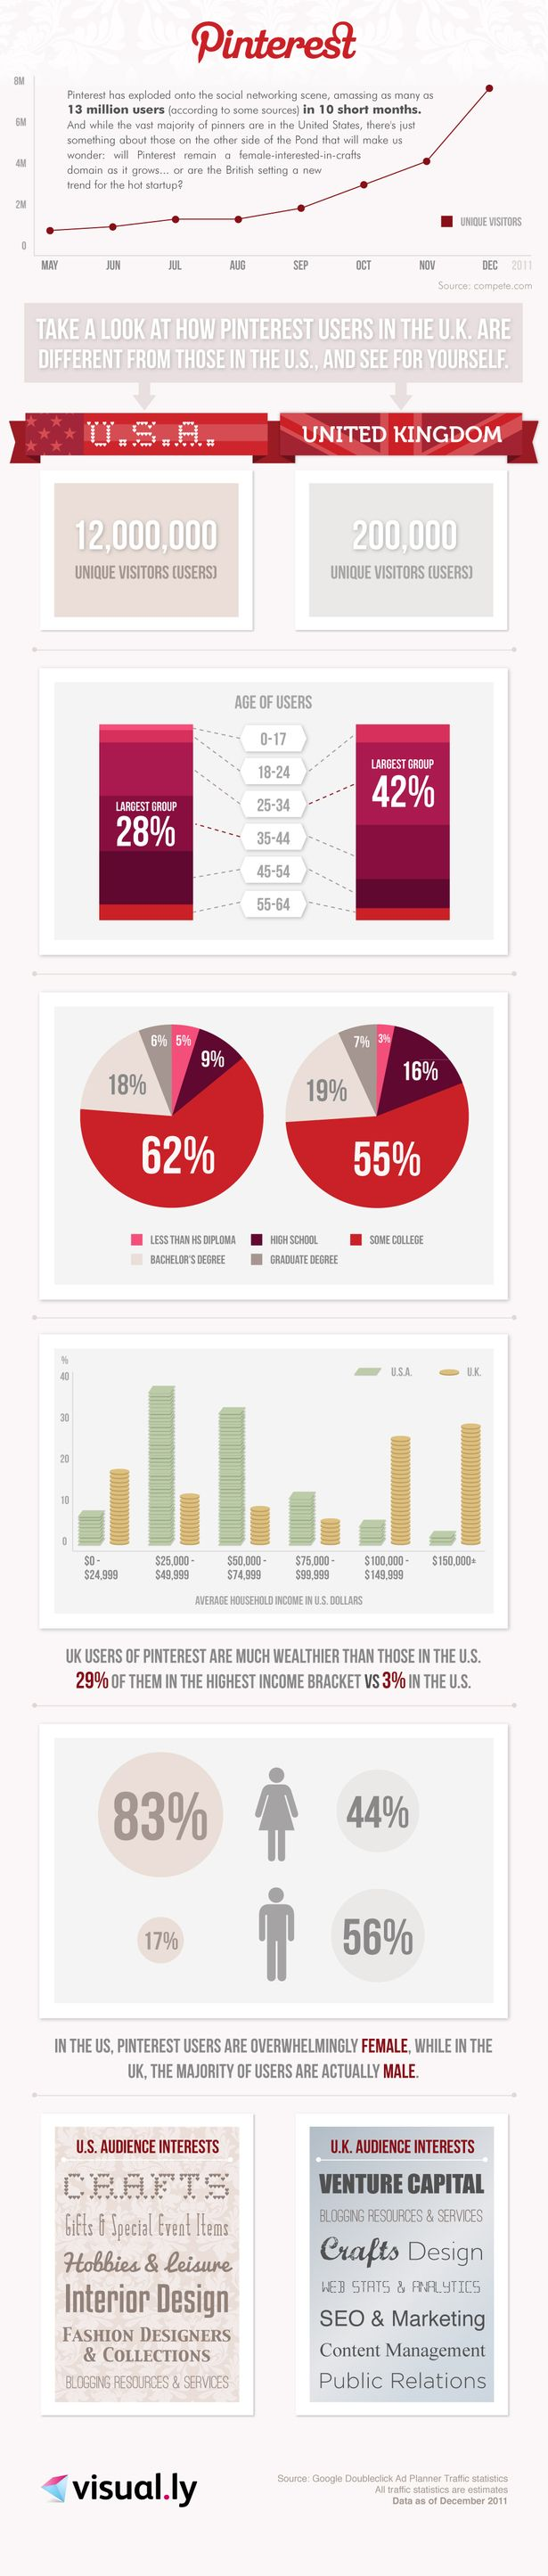 More male Pinterest users in UK than female: infographic | Econsultancy